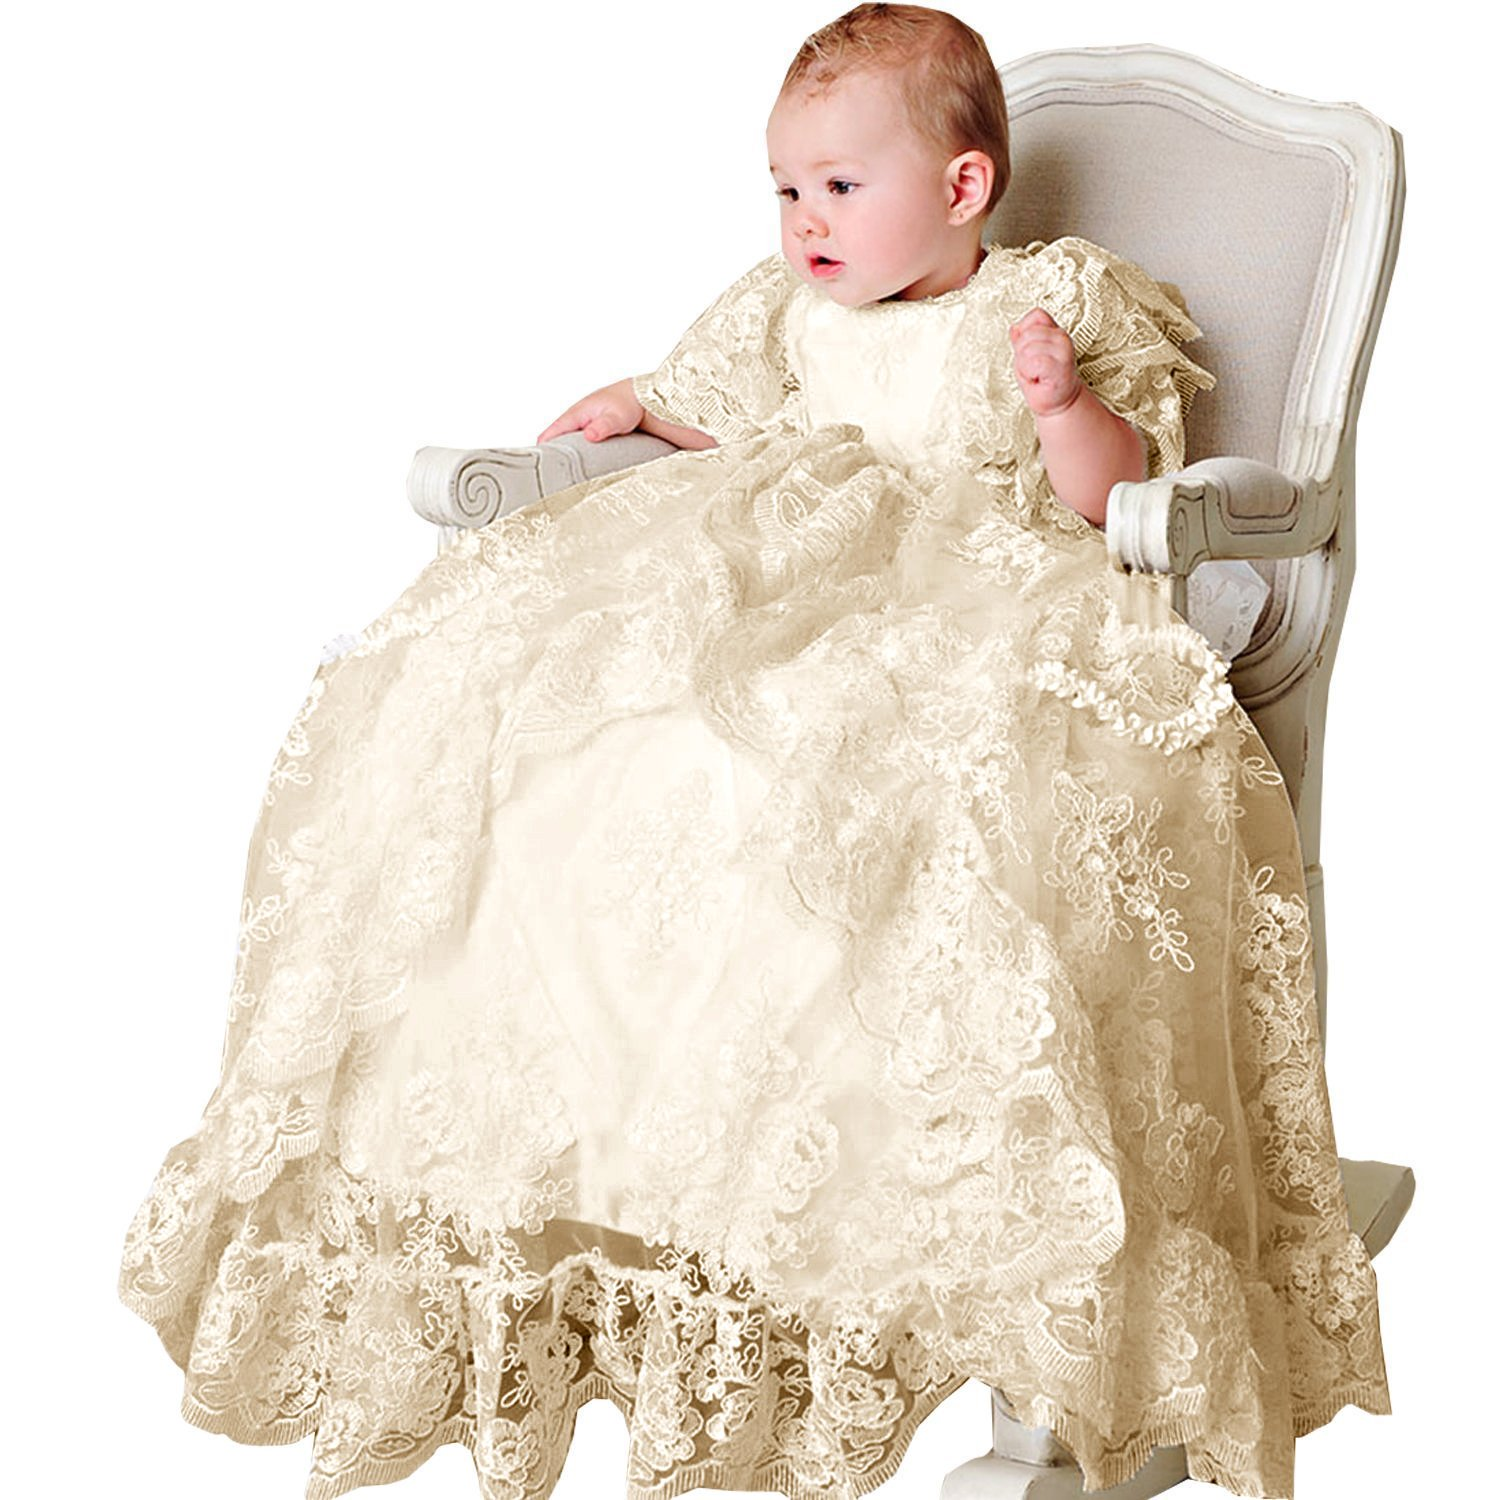 Newdeve Short Sleeve White Lace Christening Baptism Dresses Long With Cap (3-6 Months, Ivory) by New Deve